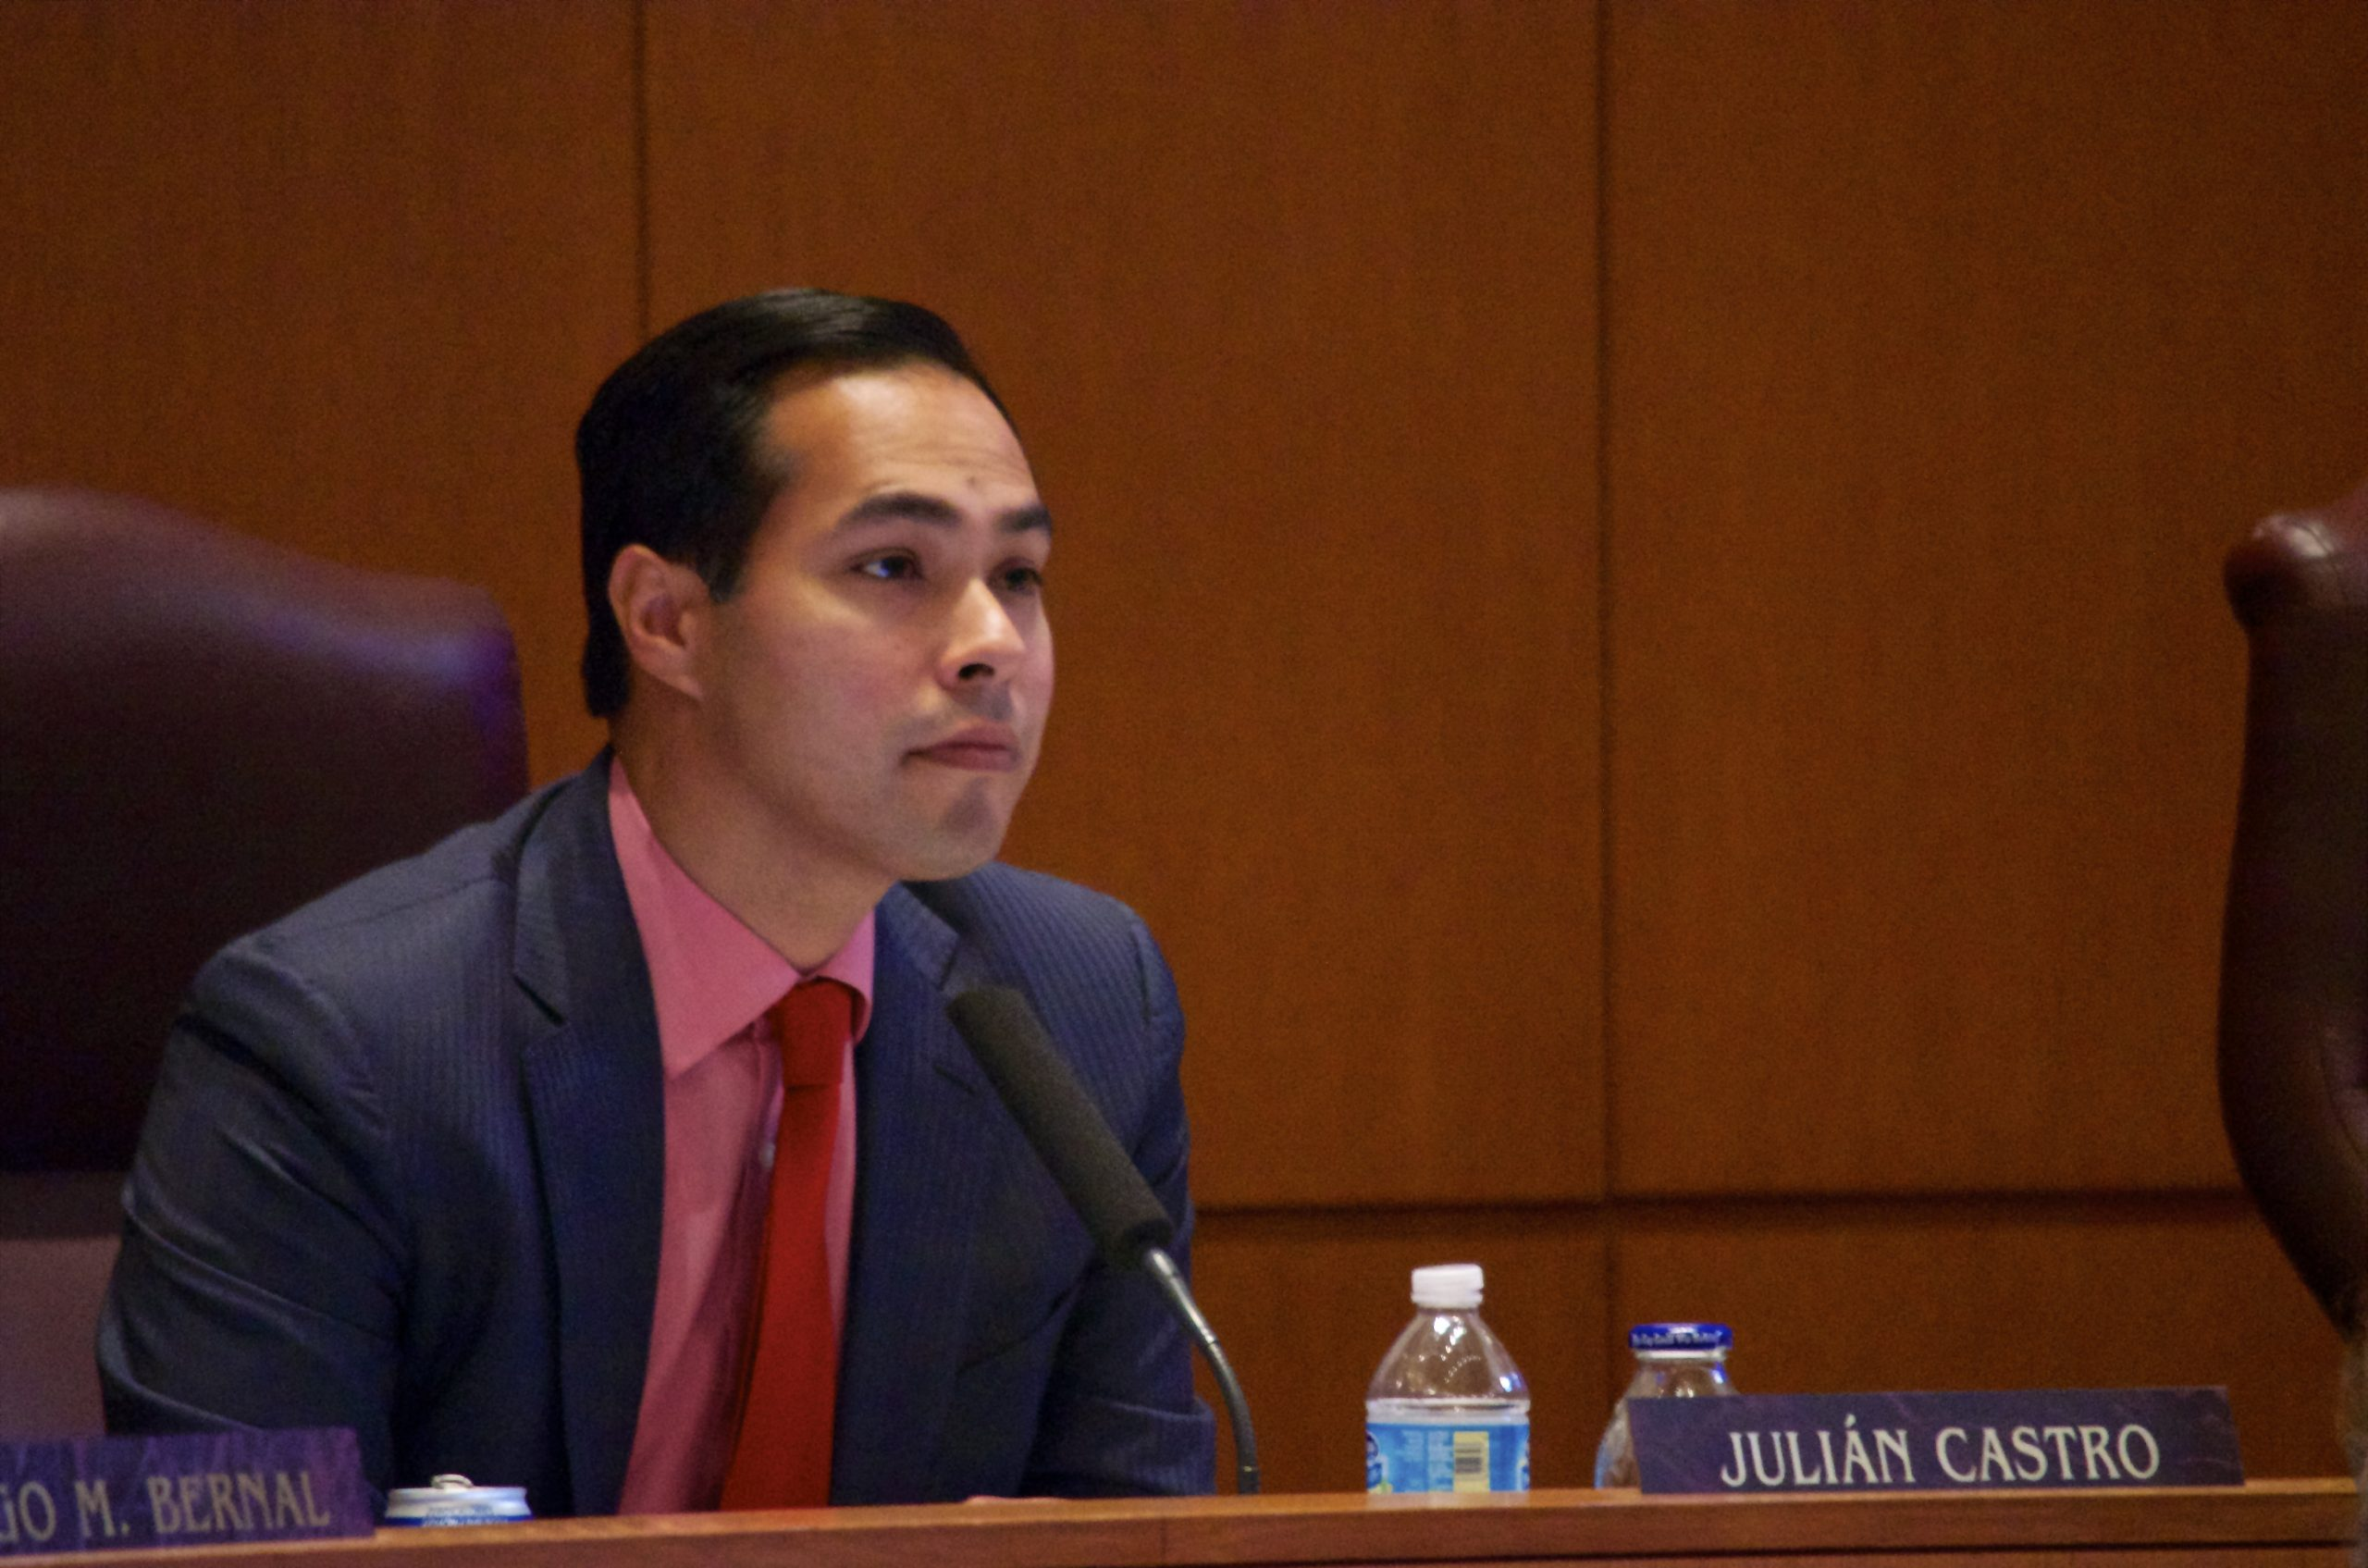 Mayor Castro listens during one of the final citizens to be heard sessions before the vote on the NDO. Photo by Katee Boyd.